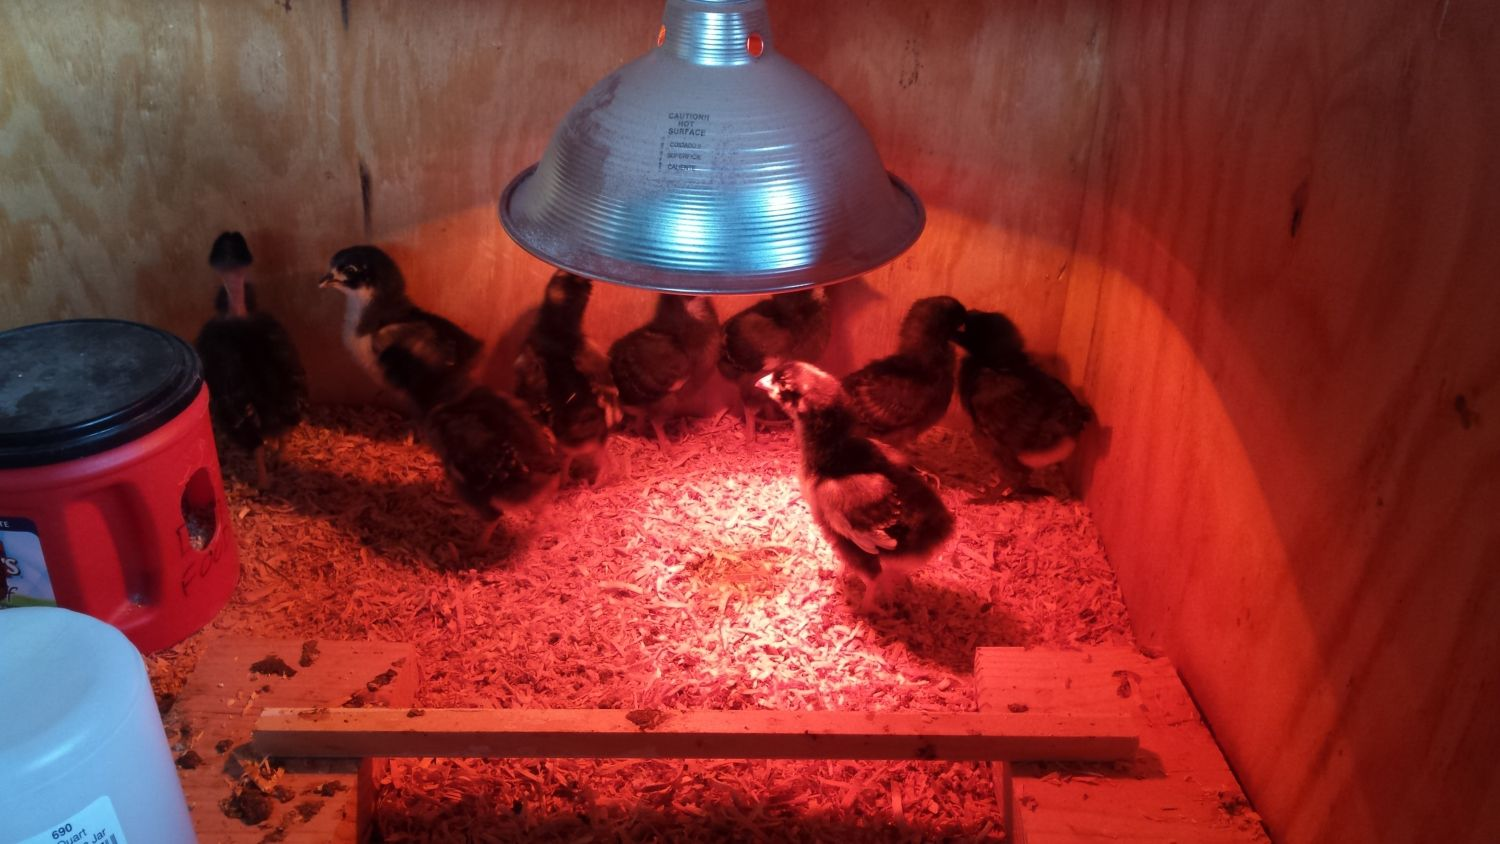 My first flock of 9 chicks. Hatched from my moms eggs. Breeds include black australorp, brahma, barred rock, naked neck, and ameraucana. The rooster is half australorp/barred rock.